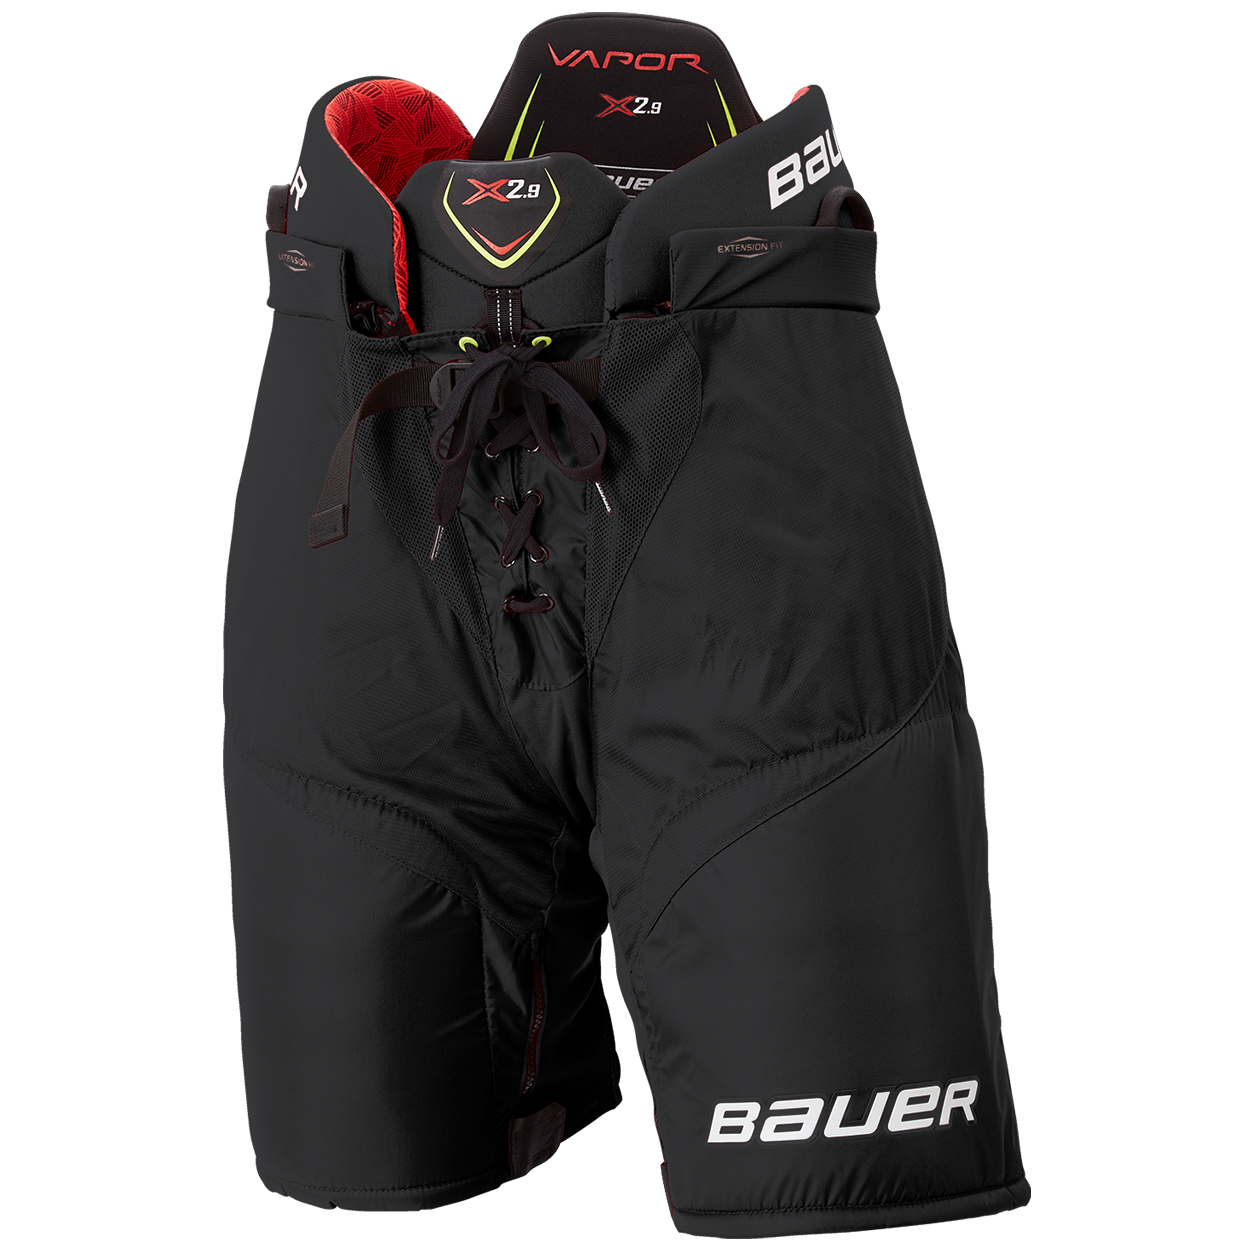 VAPOR X2.9 Pants Senior,Svart,medium